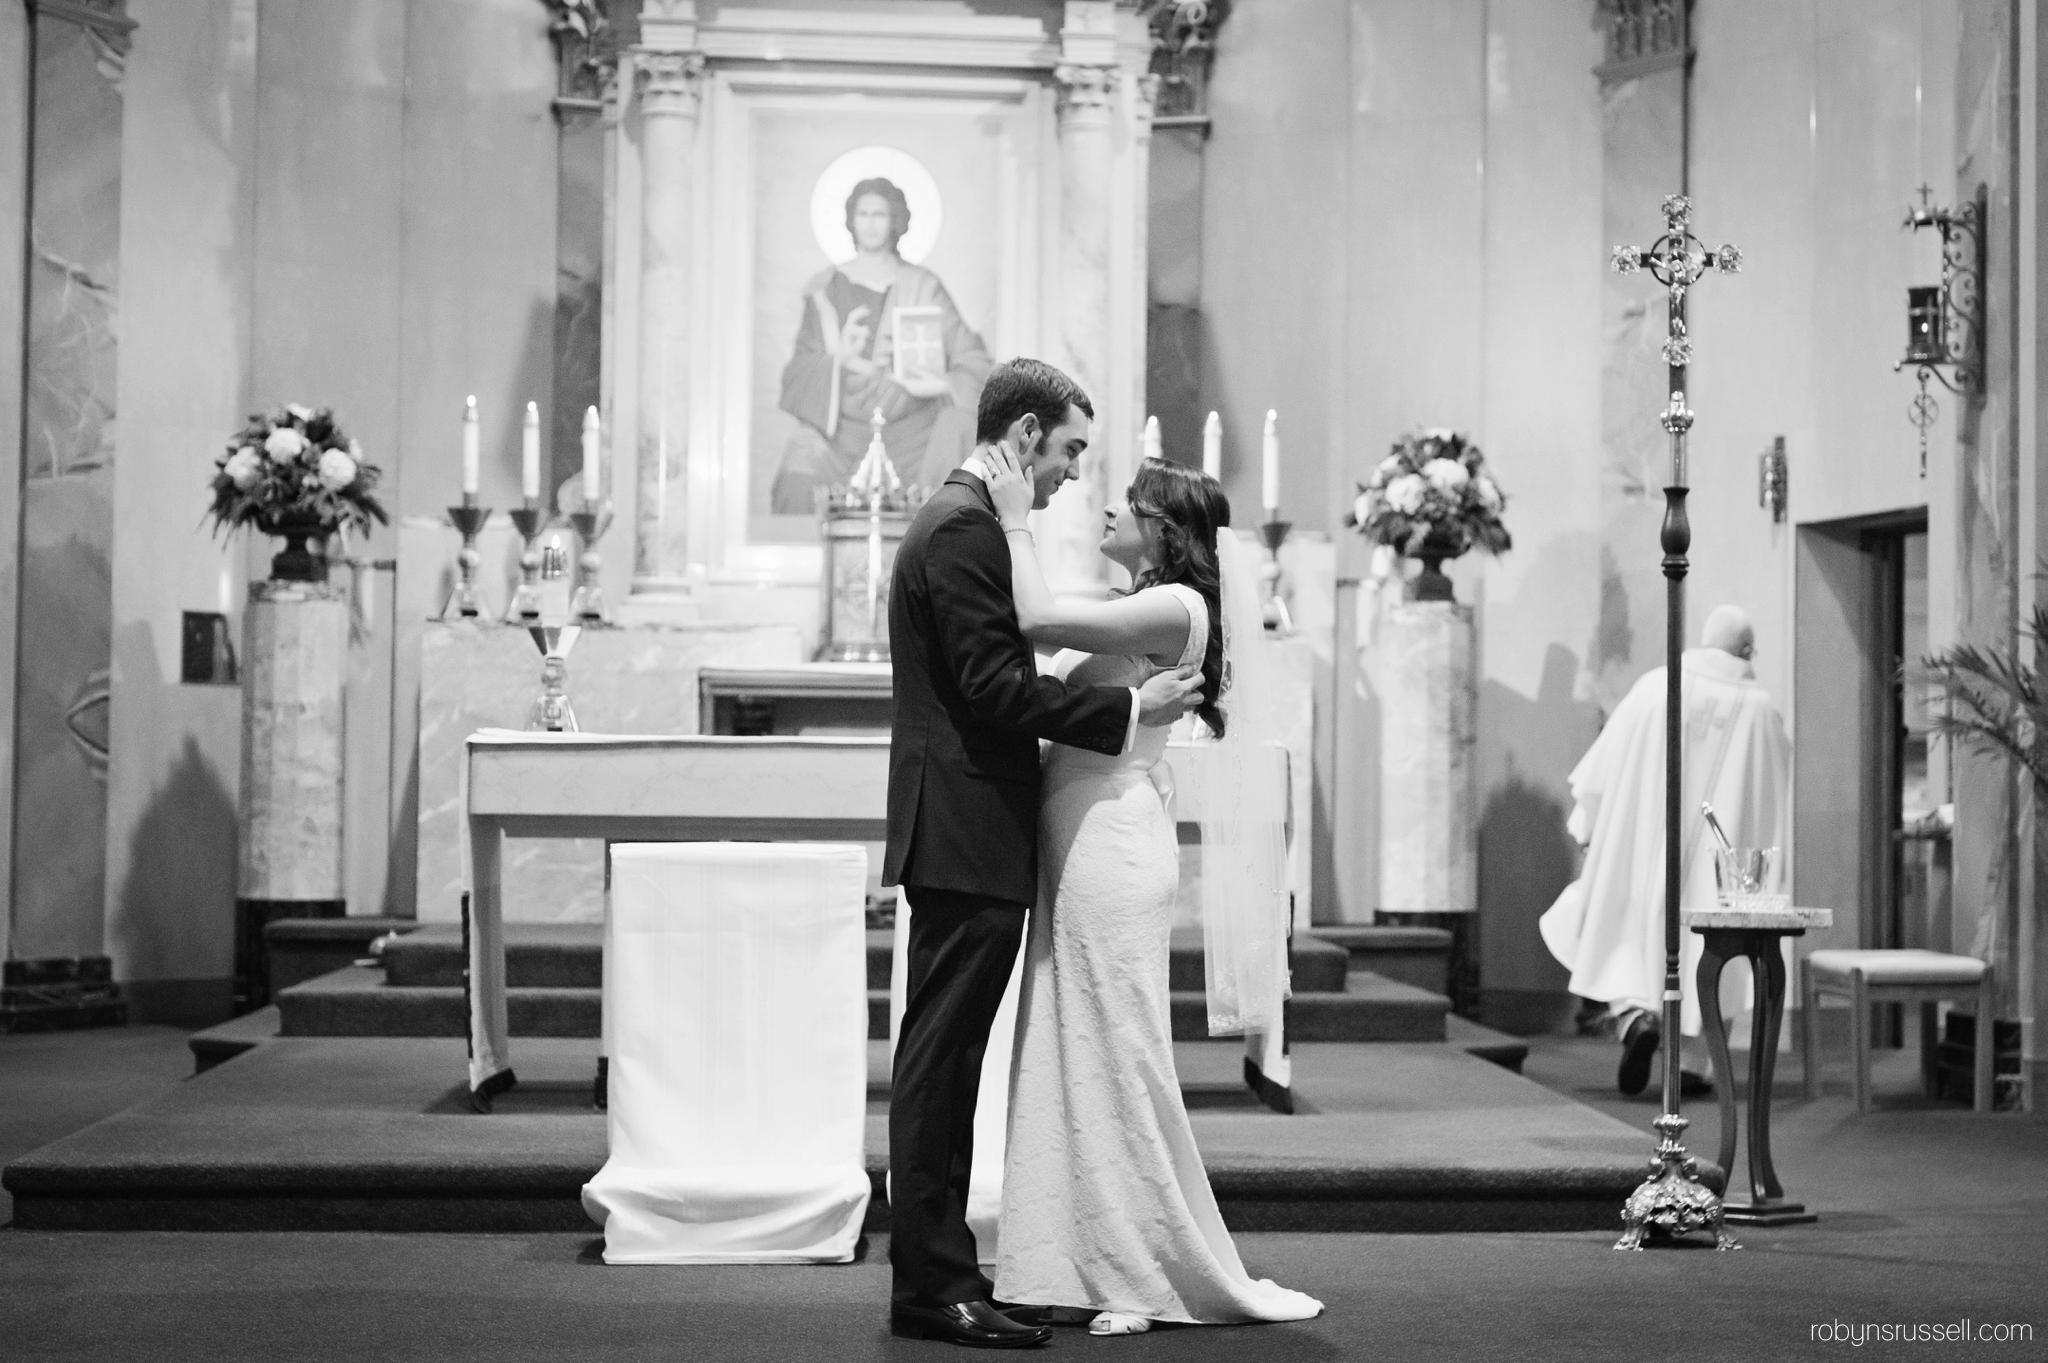 24-bride-and-groom-black-and-white-portrait.jpg